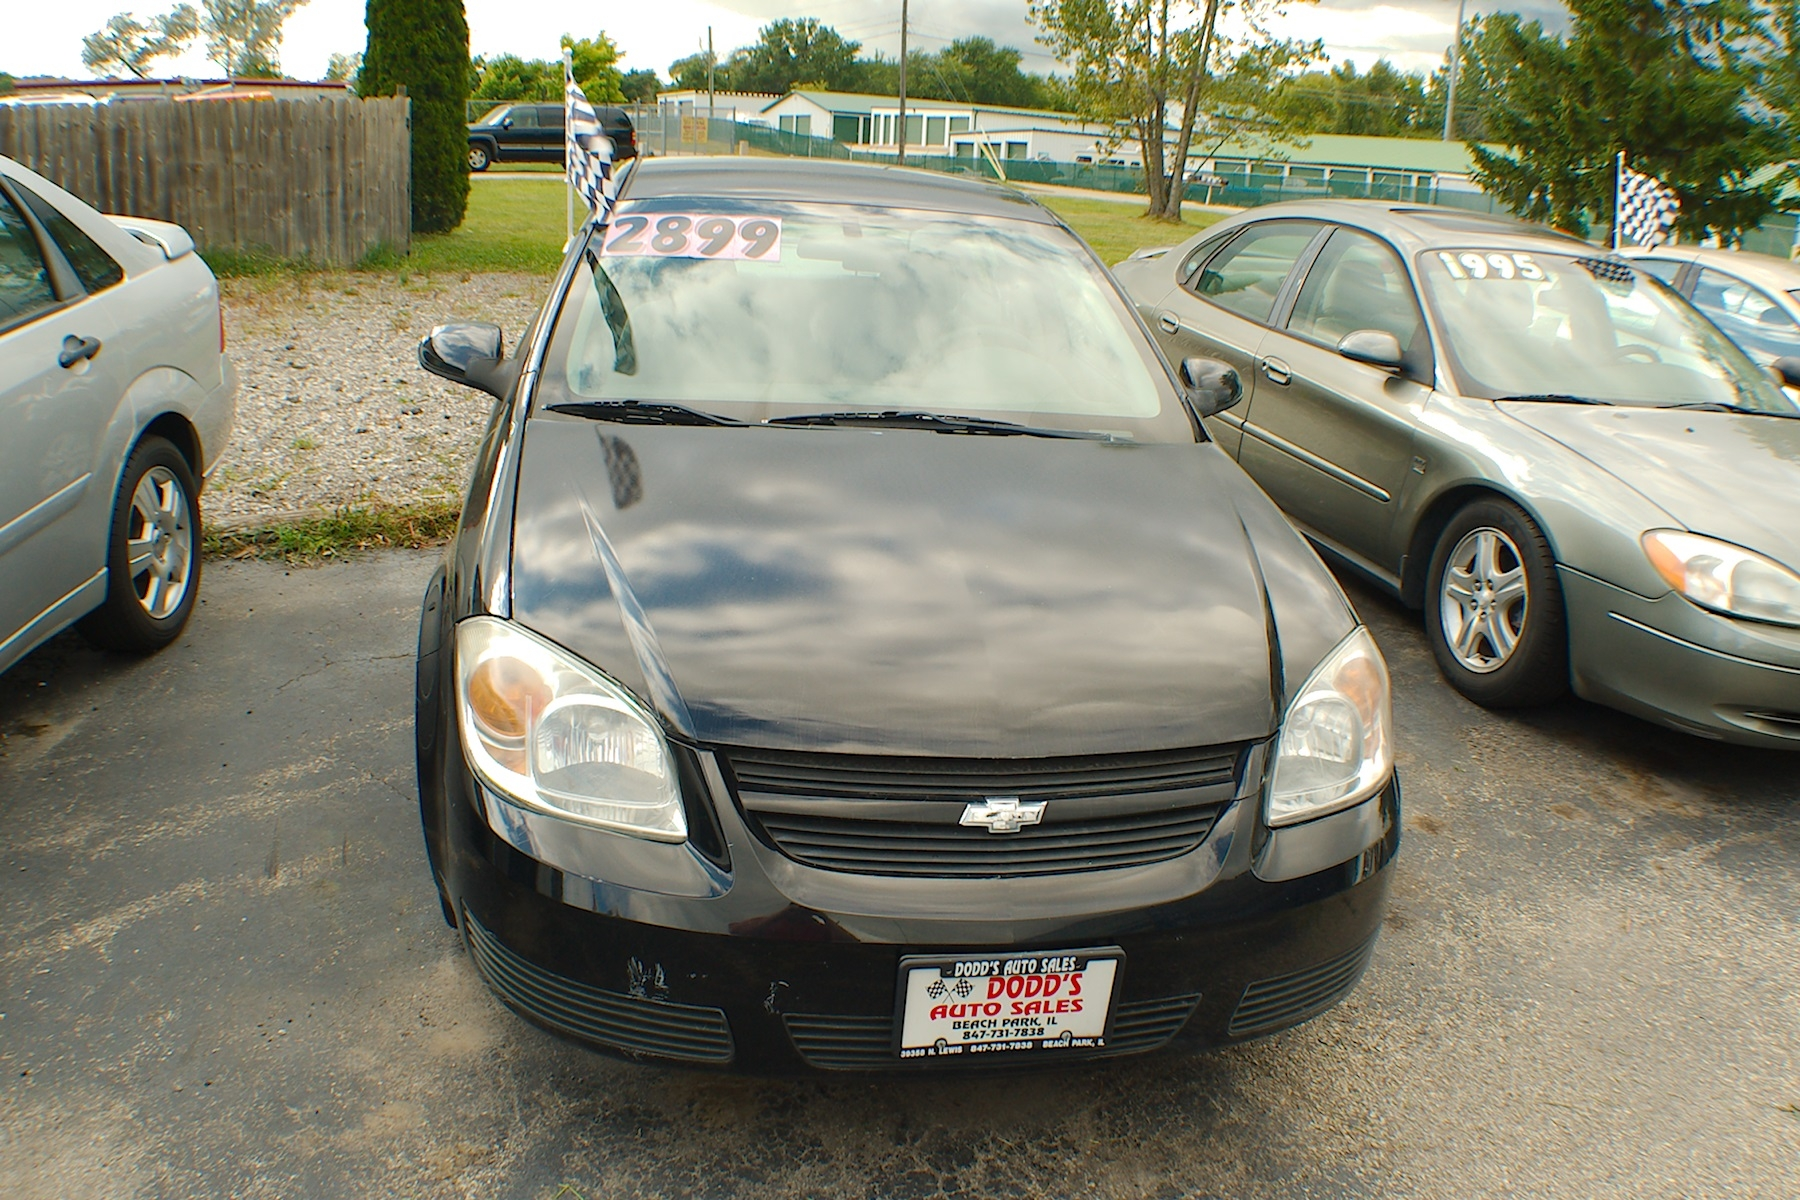 2005 Chevrolet Cobalt LS Black Sedan Used Car Sale Gurnee Kenosha Mchenry Chicago Illinois